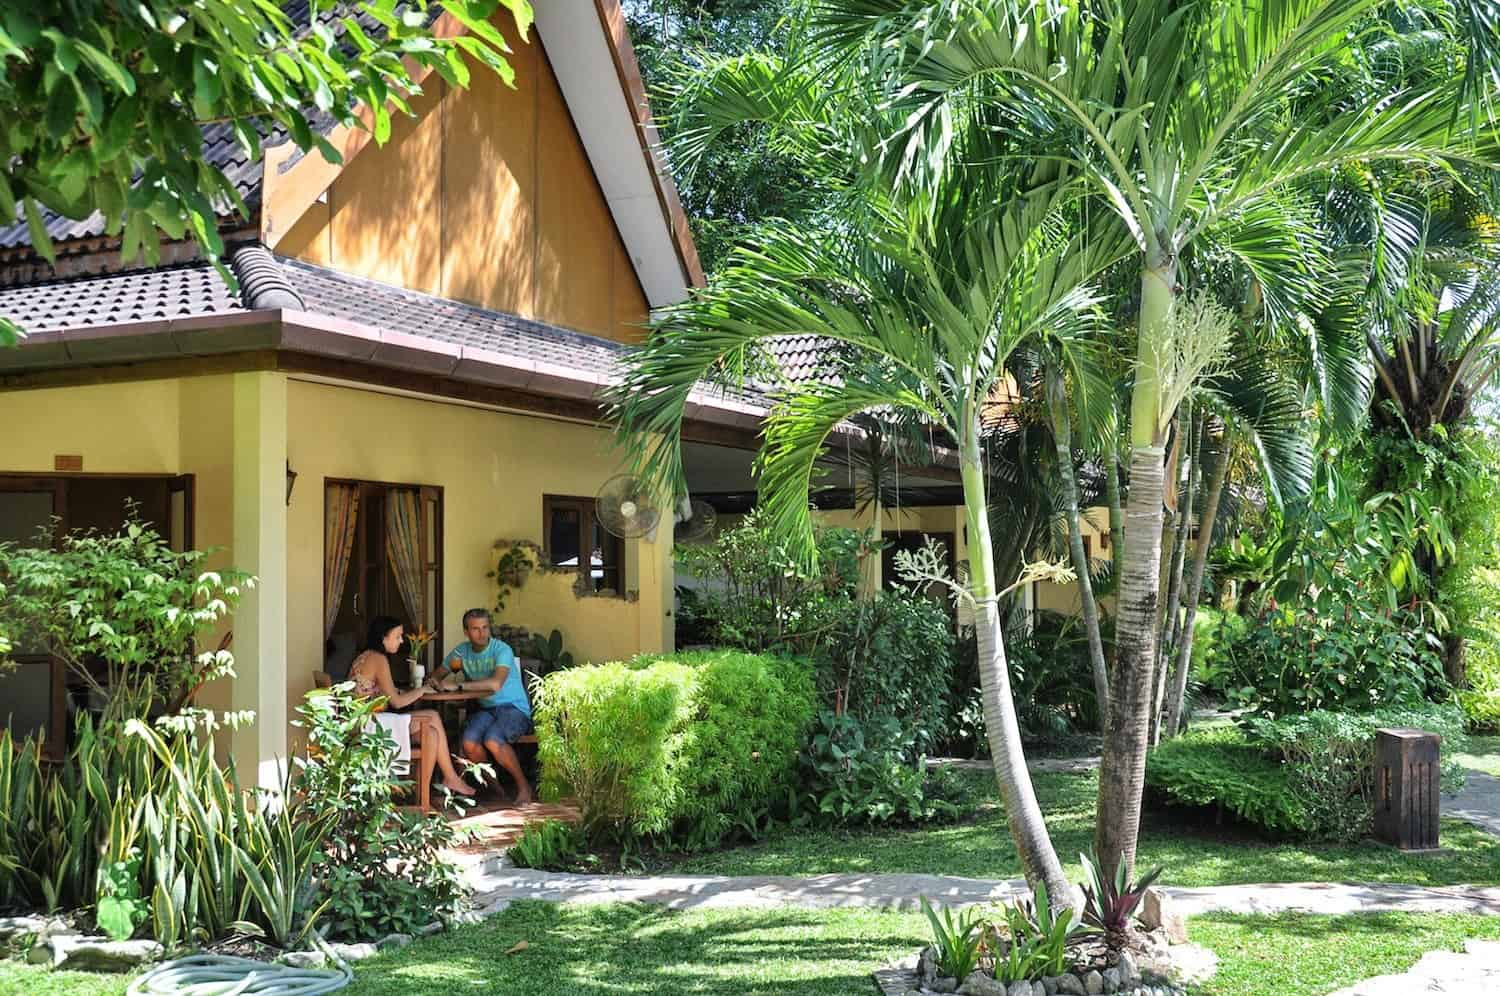 Thailand Diving holidays - Phuket Palm Garden room